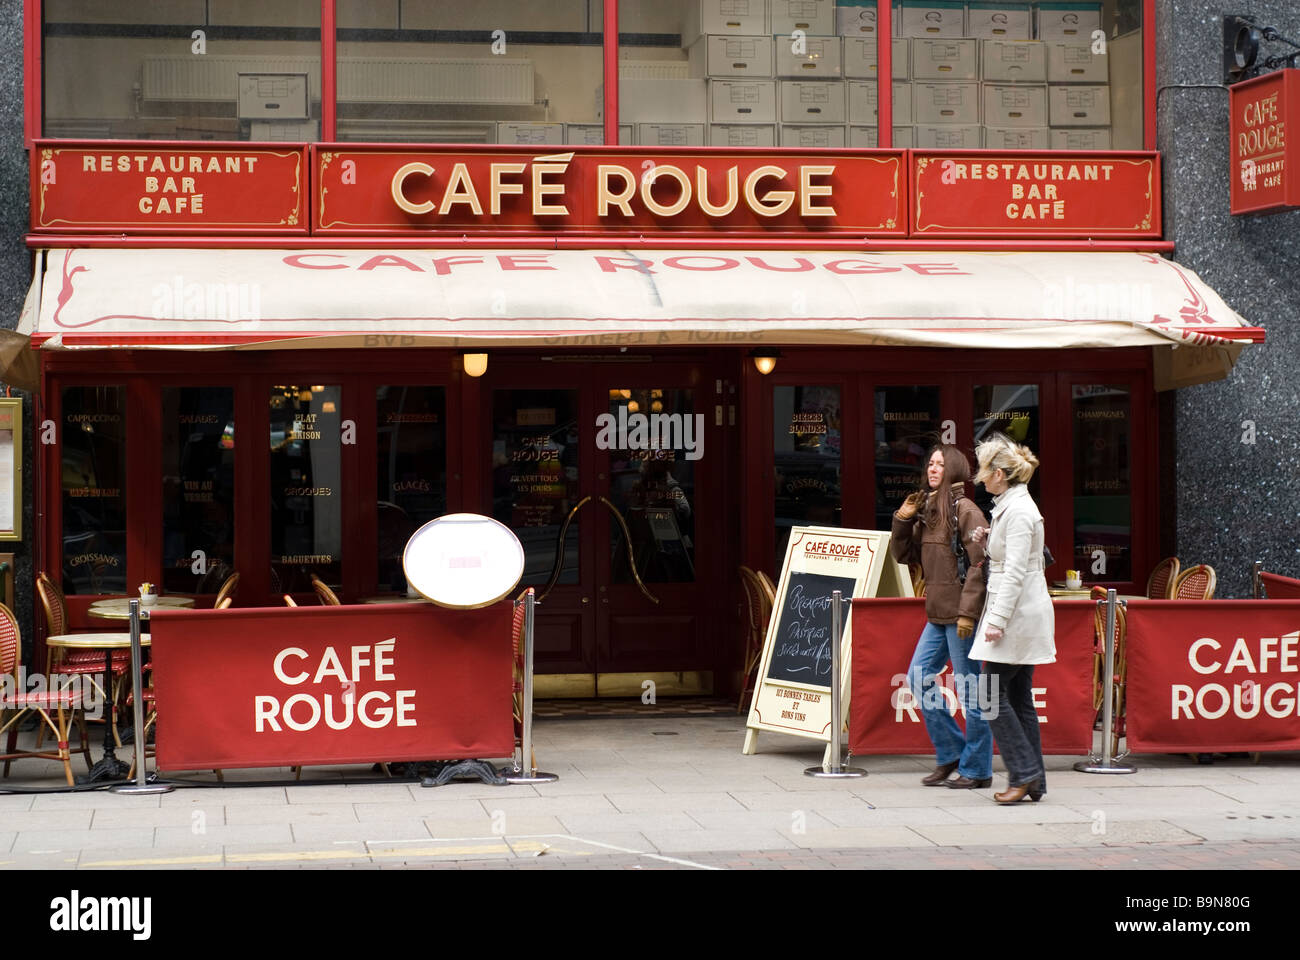 Cafe rouge on Deansgate Manchester city centre UK Stock Photo